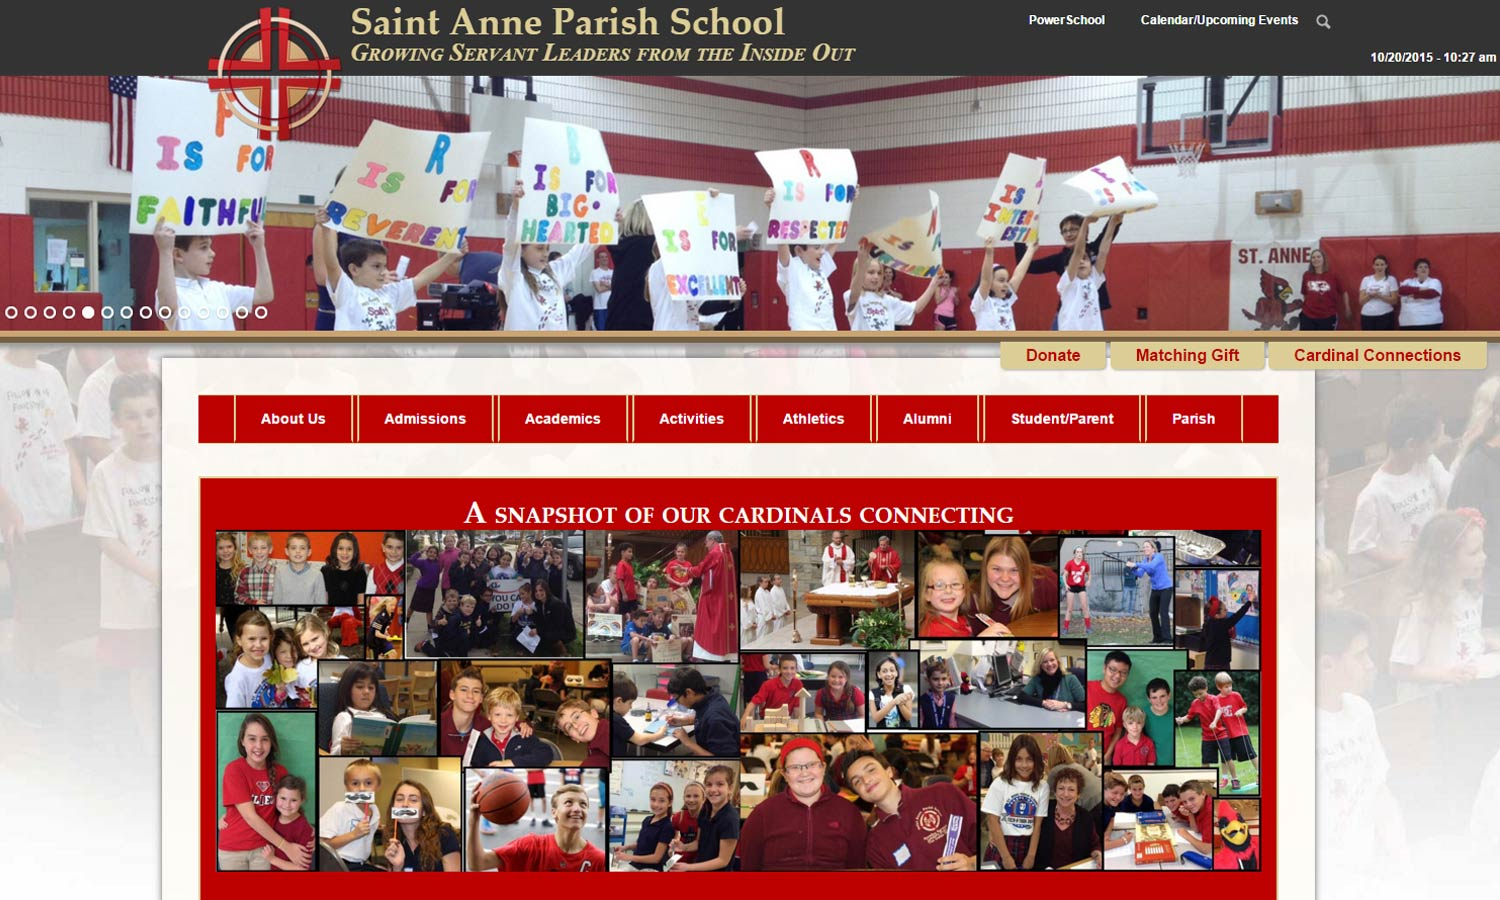 St. Anne Catholic Community School